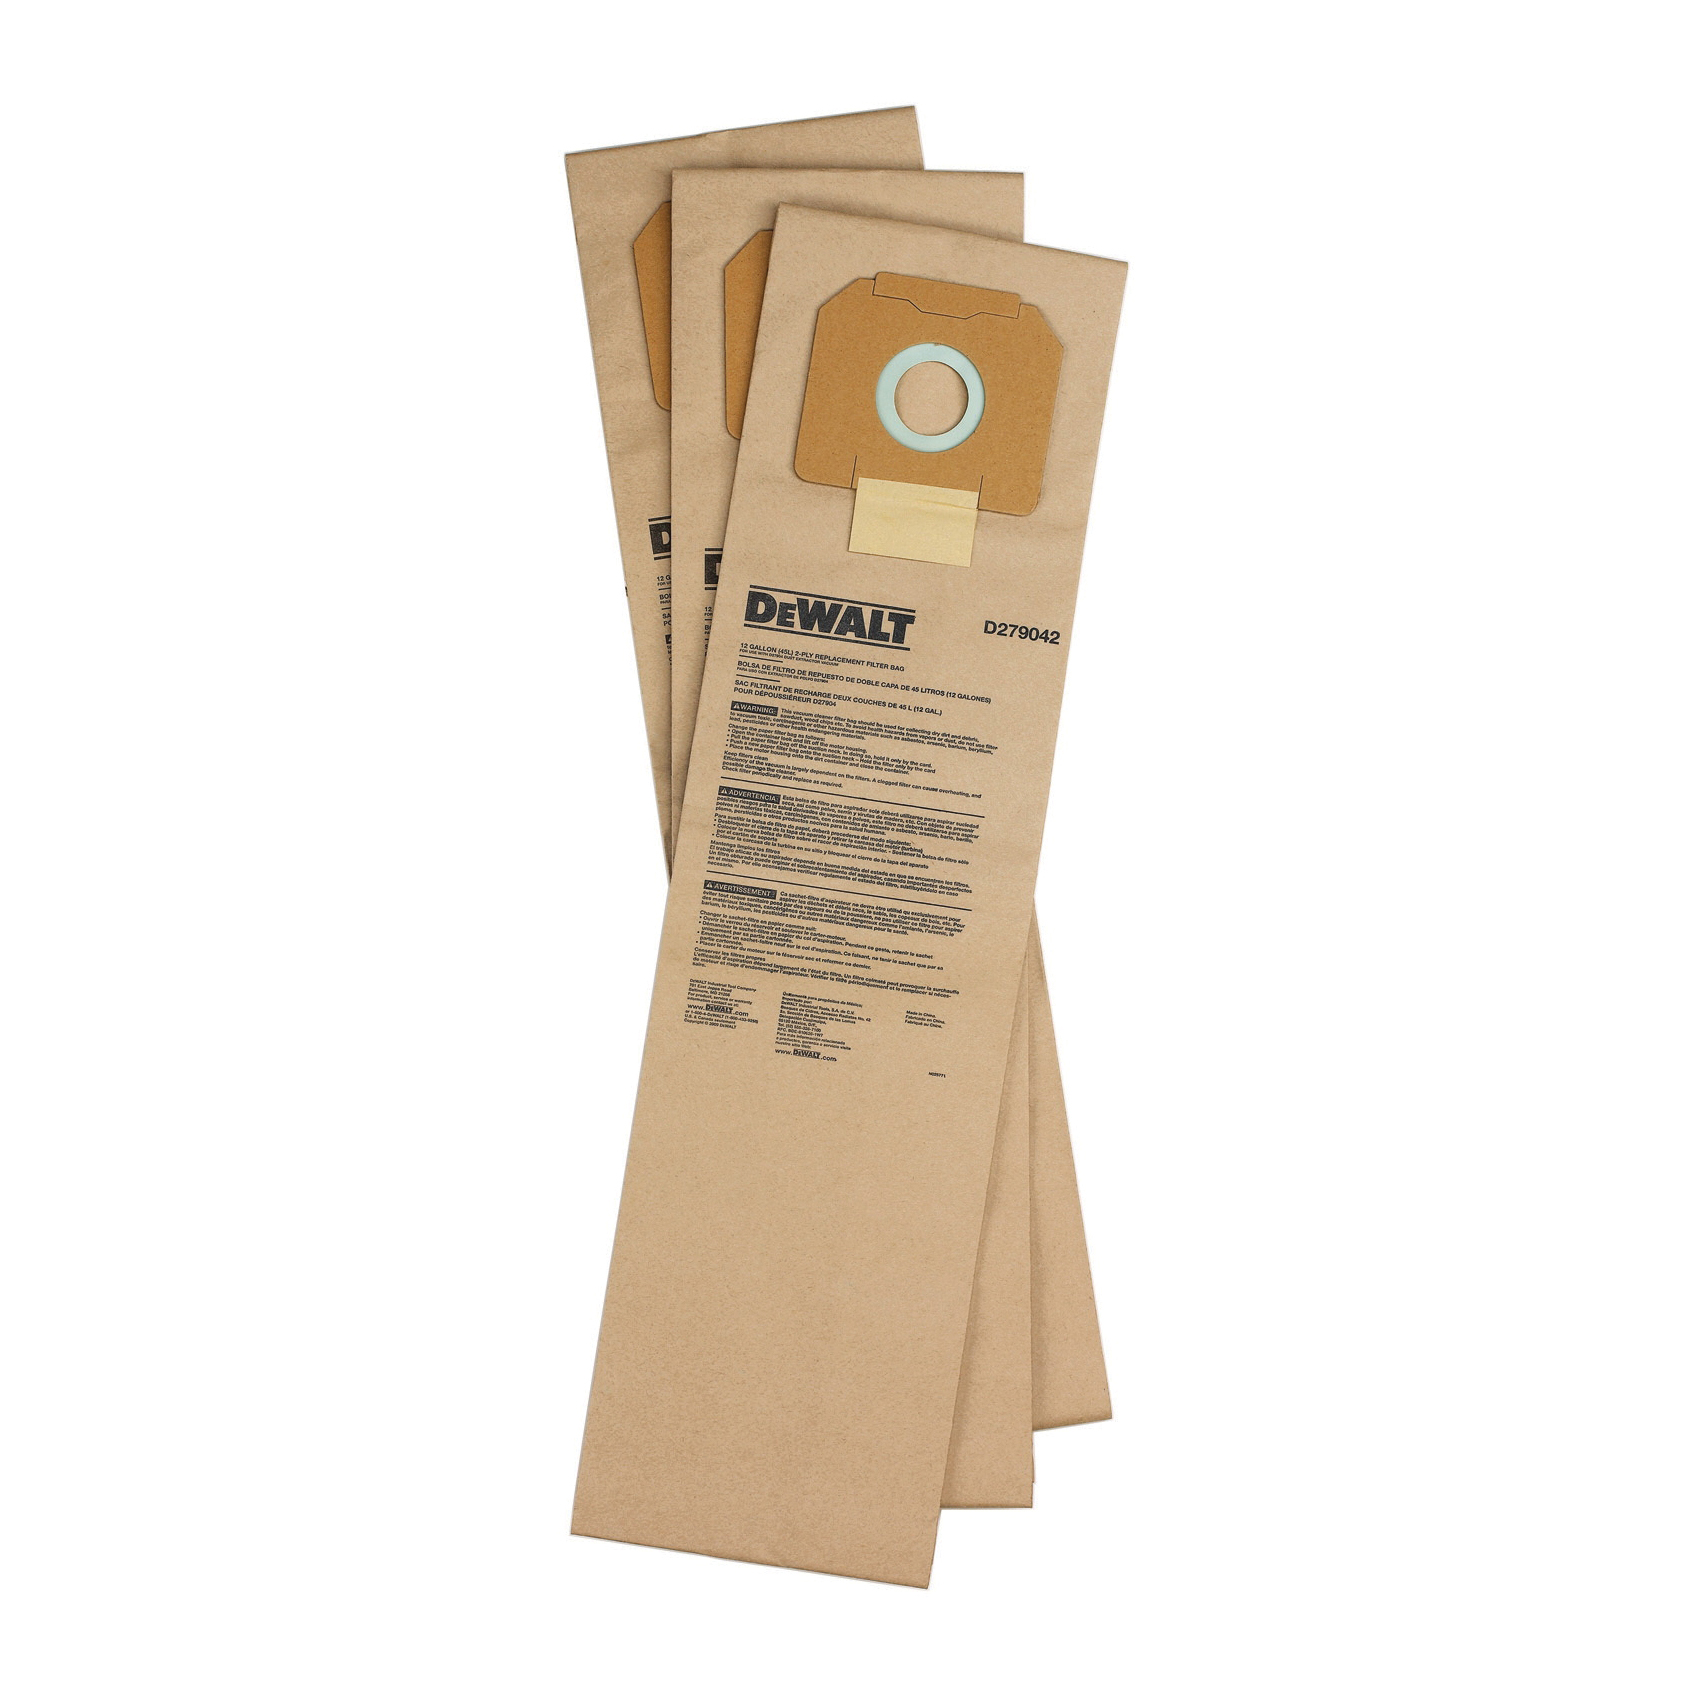 DeWALT® D279042 Non-Reusable Filter Bag, 8 in L, Paper, Brown, For Use With D27904 12 gal Dust Extractor